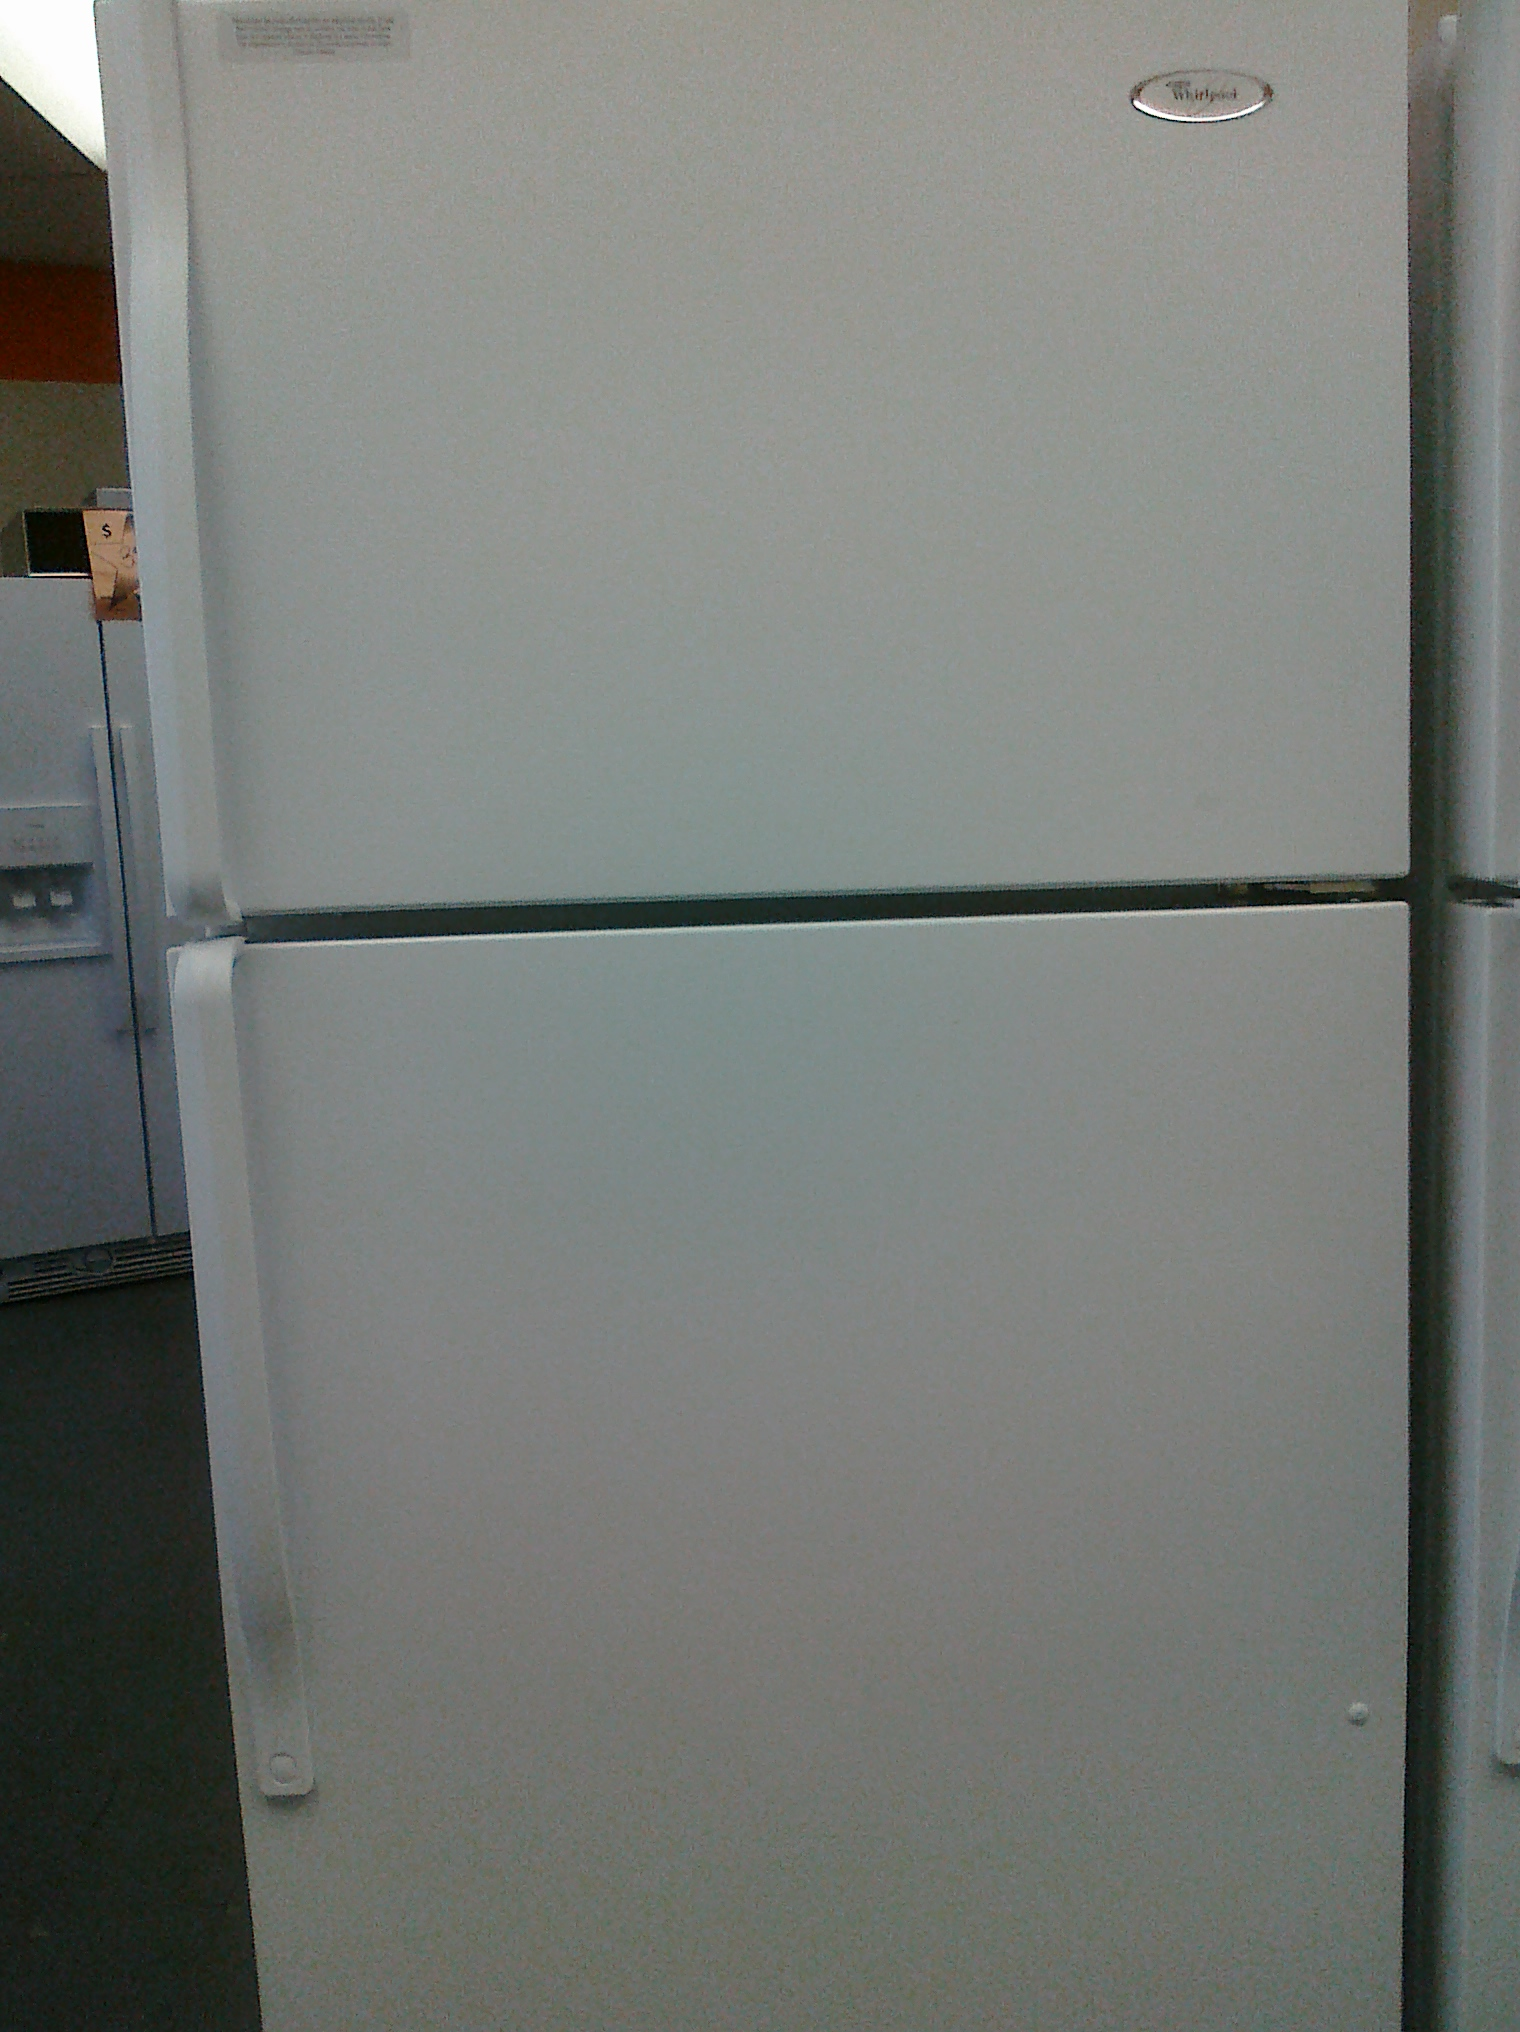 (9) Whirlpool W8TXNGMWQ 18 Cubic Foot Top-Mount Refrigerator with Ice Maker, White